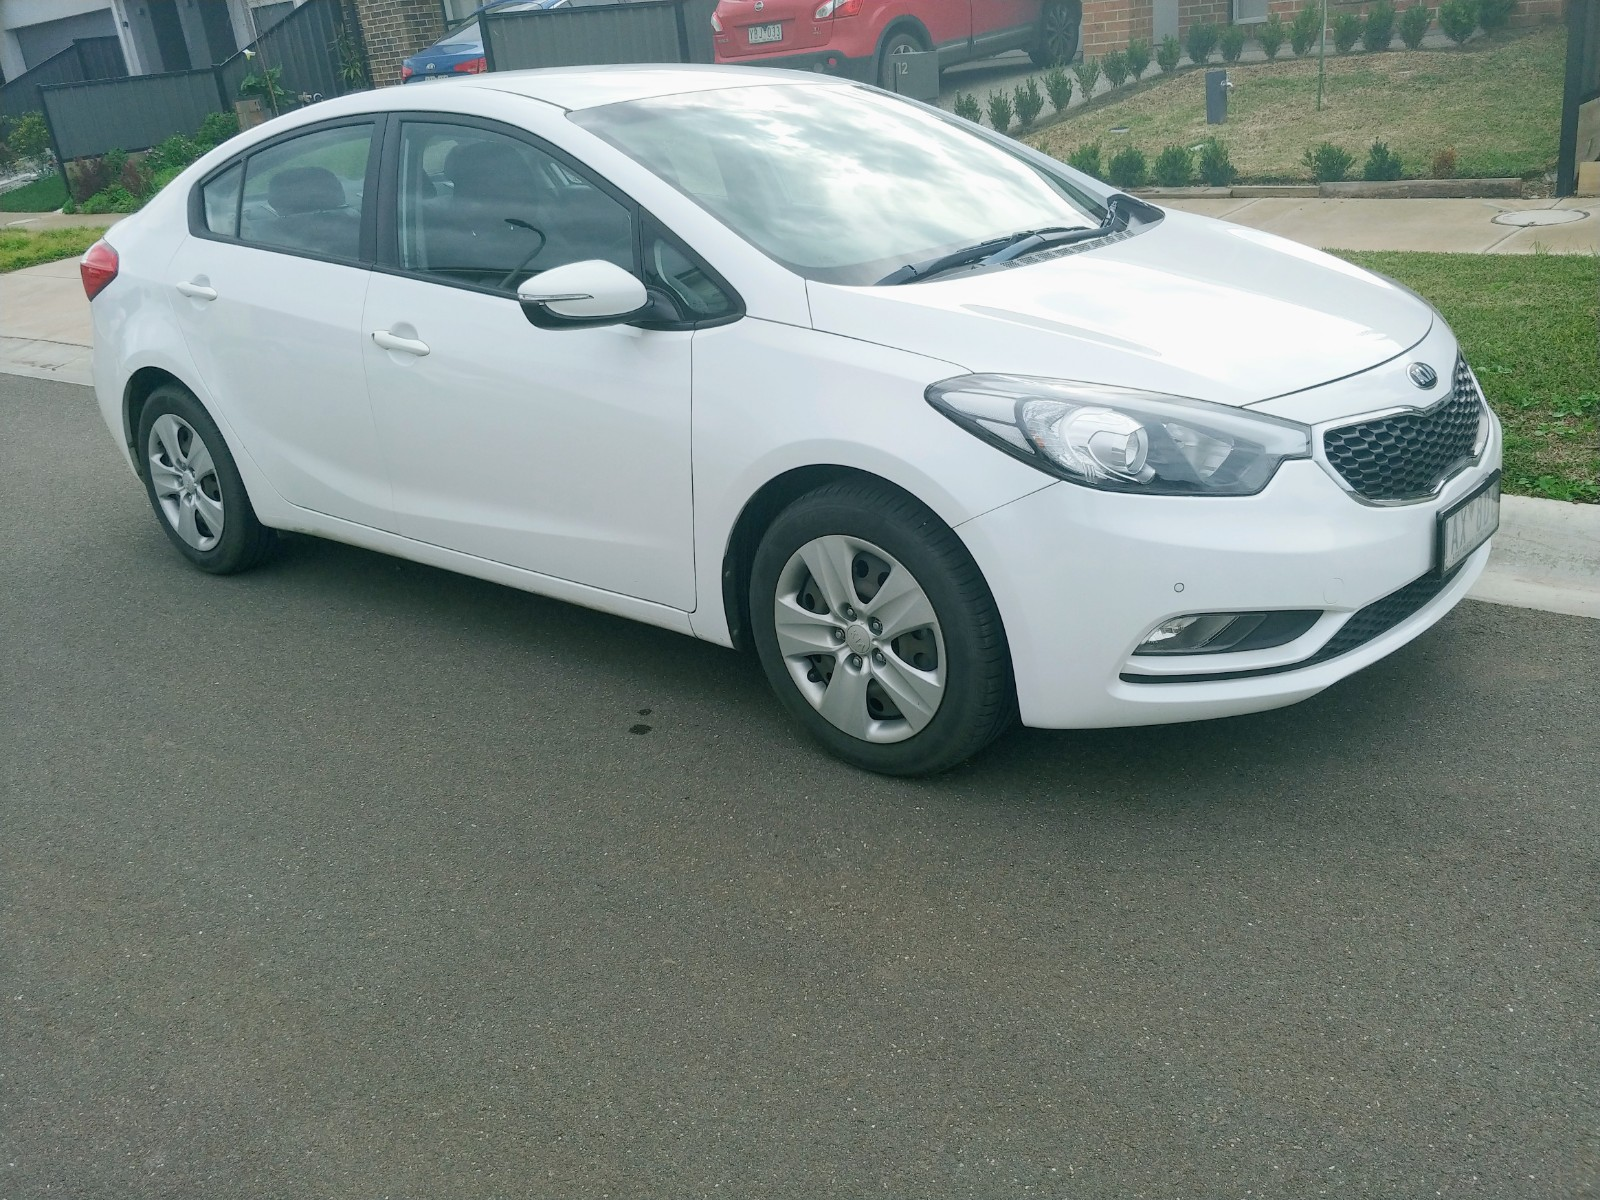 Picture of Chinmay's 2013 Kia Cerato